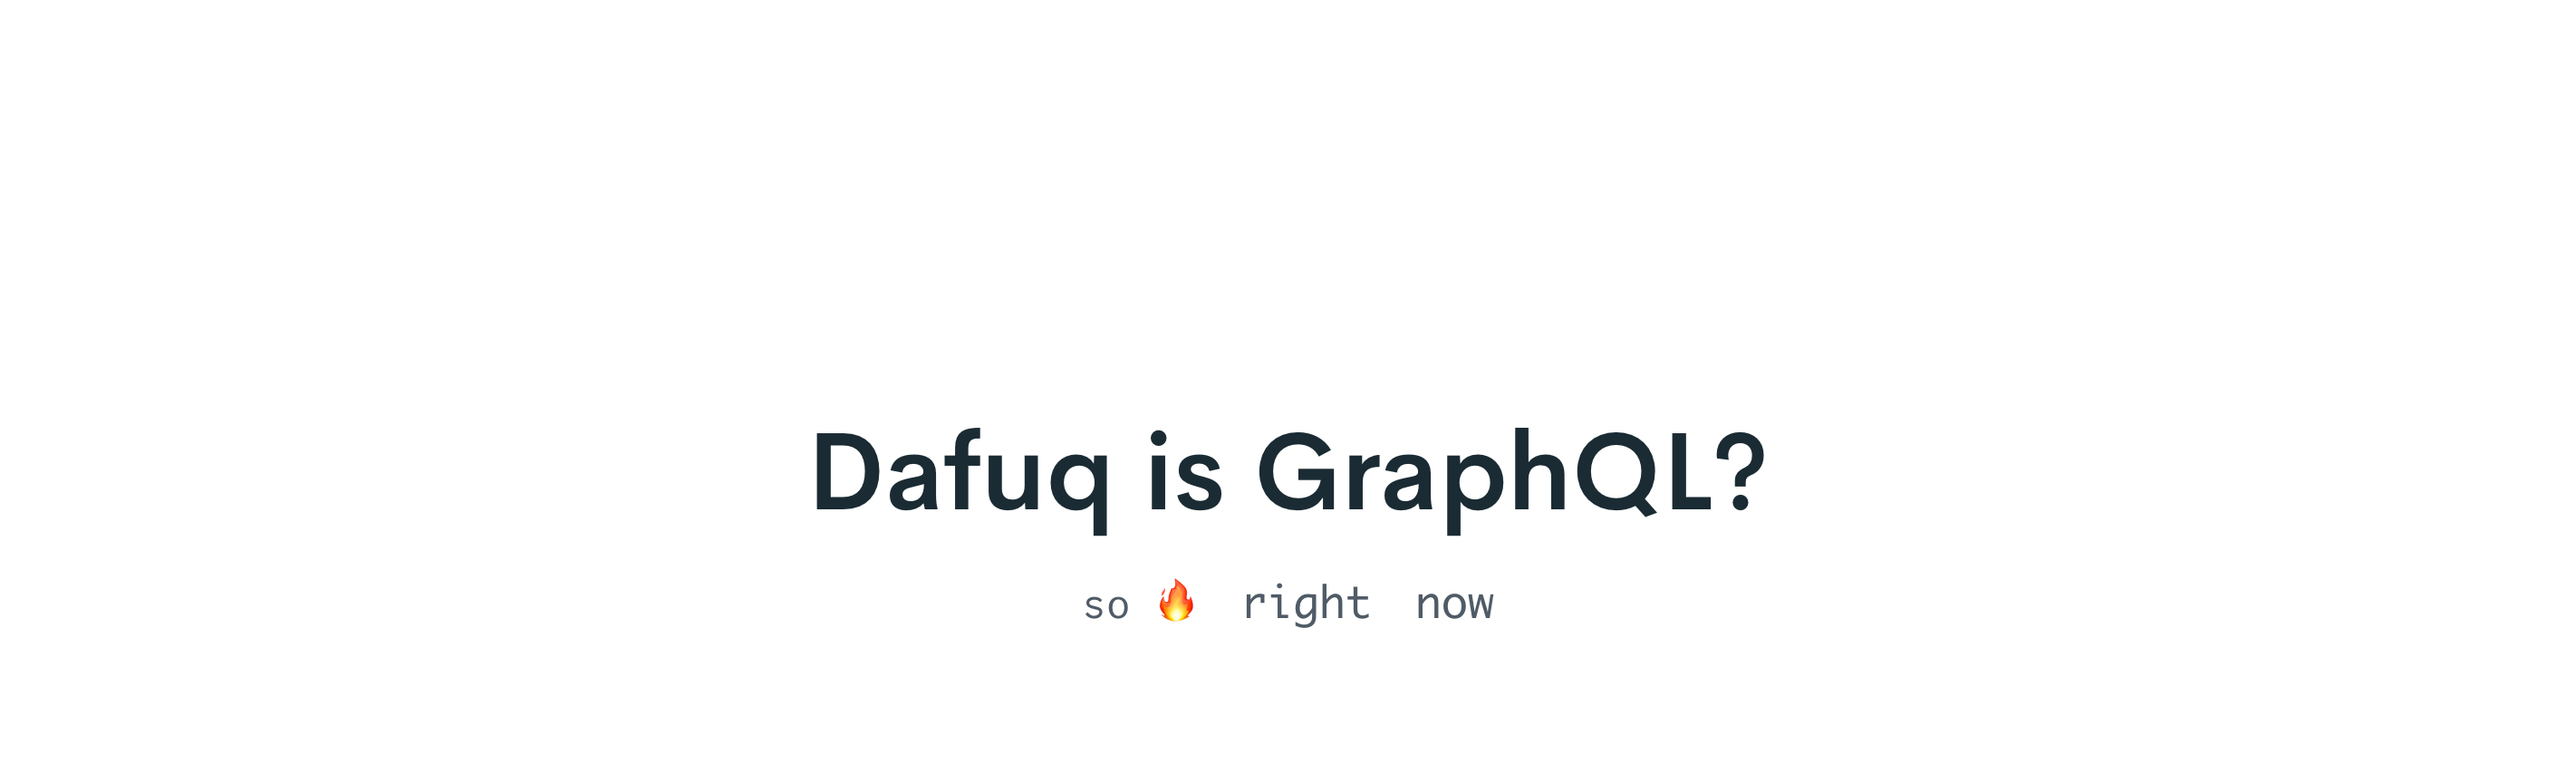 Dafuq is GraphQL